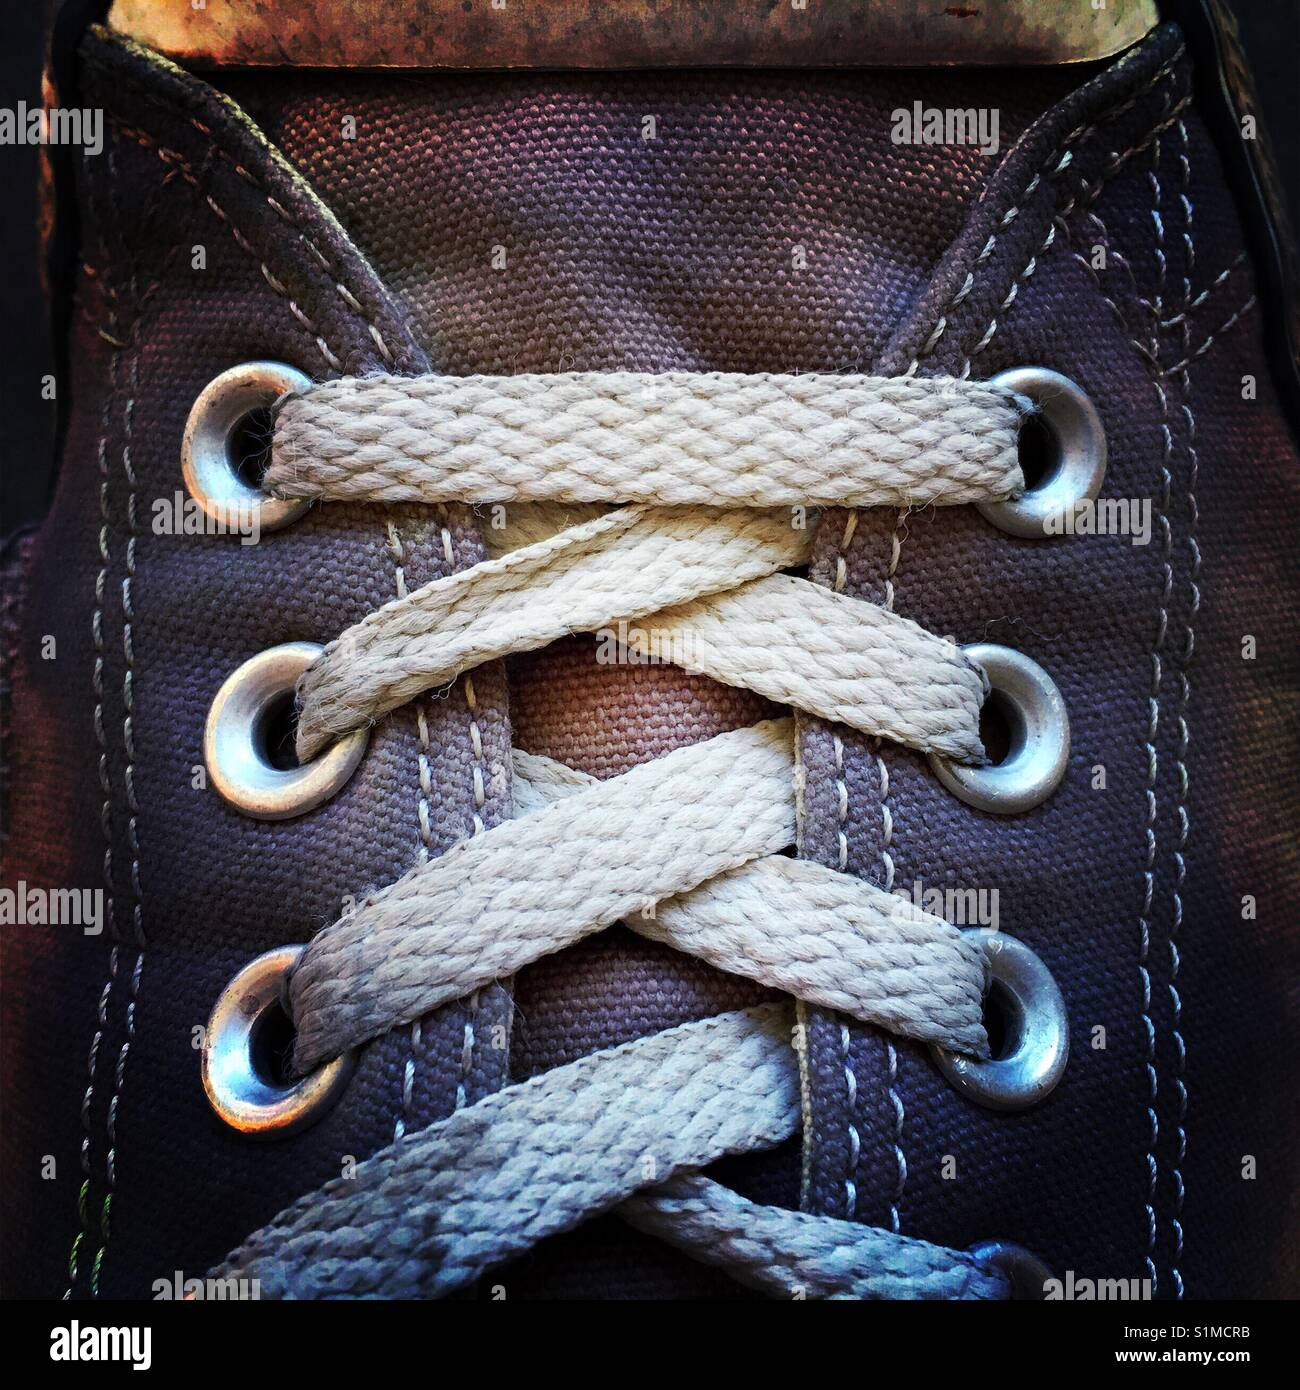 A close up shot of an old worn out canvas shoe - Stock Image